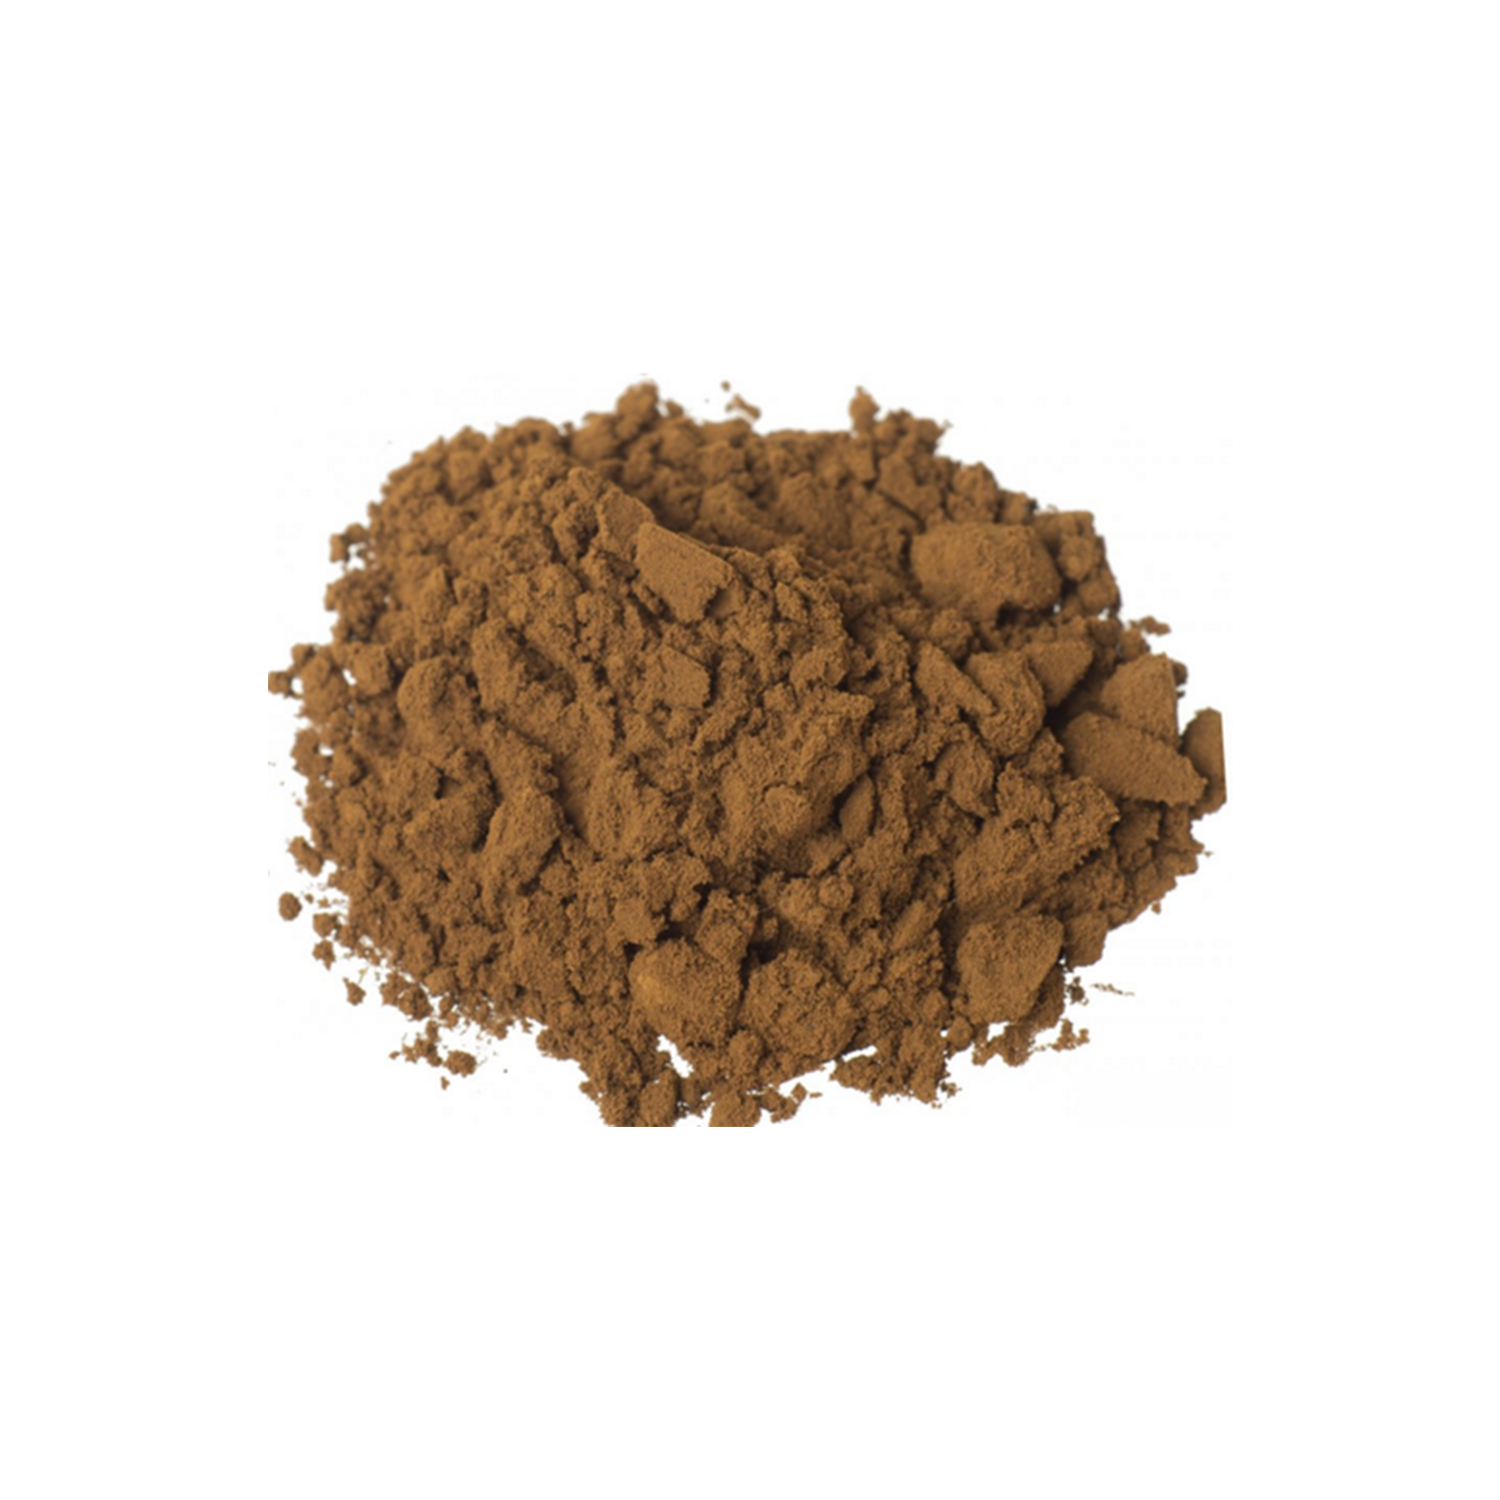 Kra Thom Kok (Mitragyna Hirsuta) Powdered 100:1 Extract